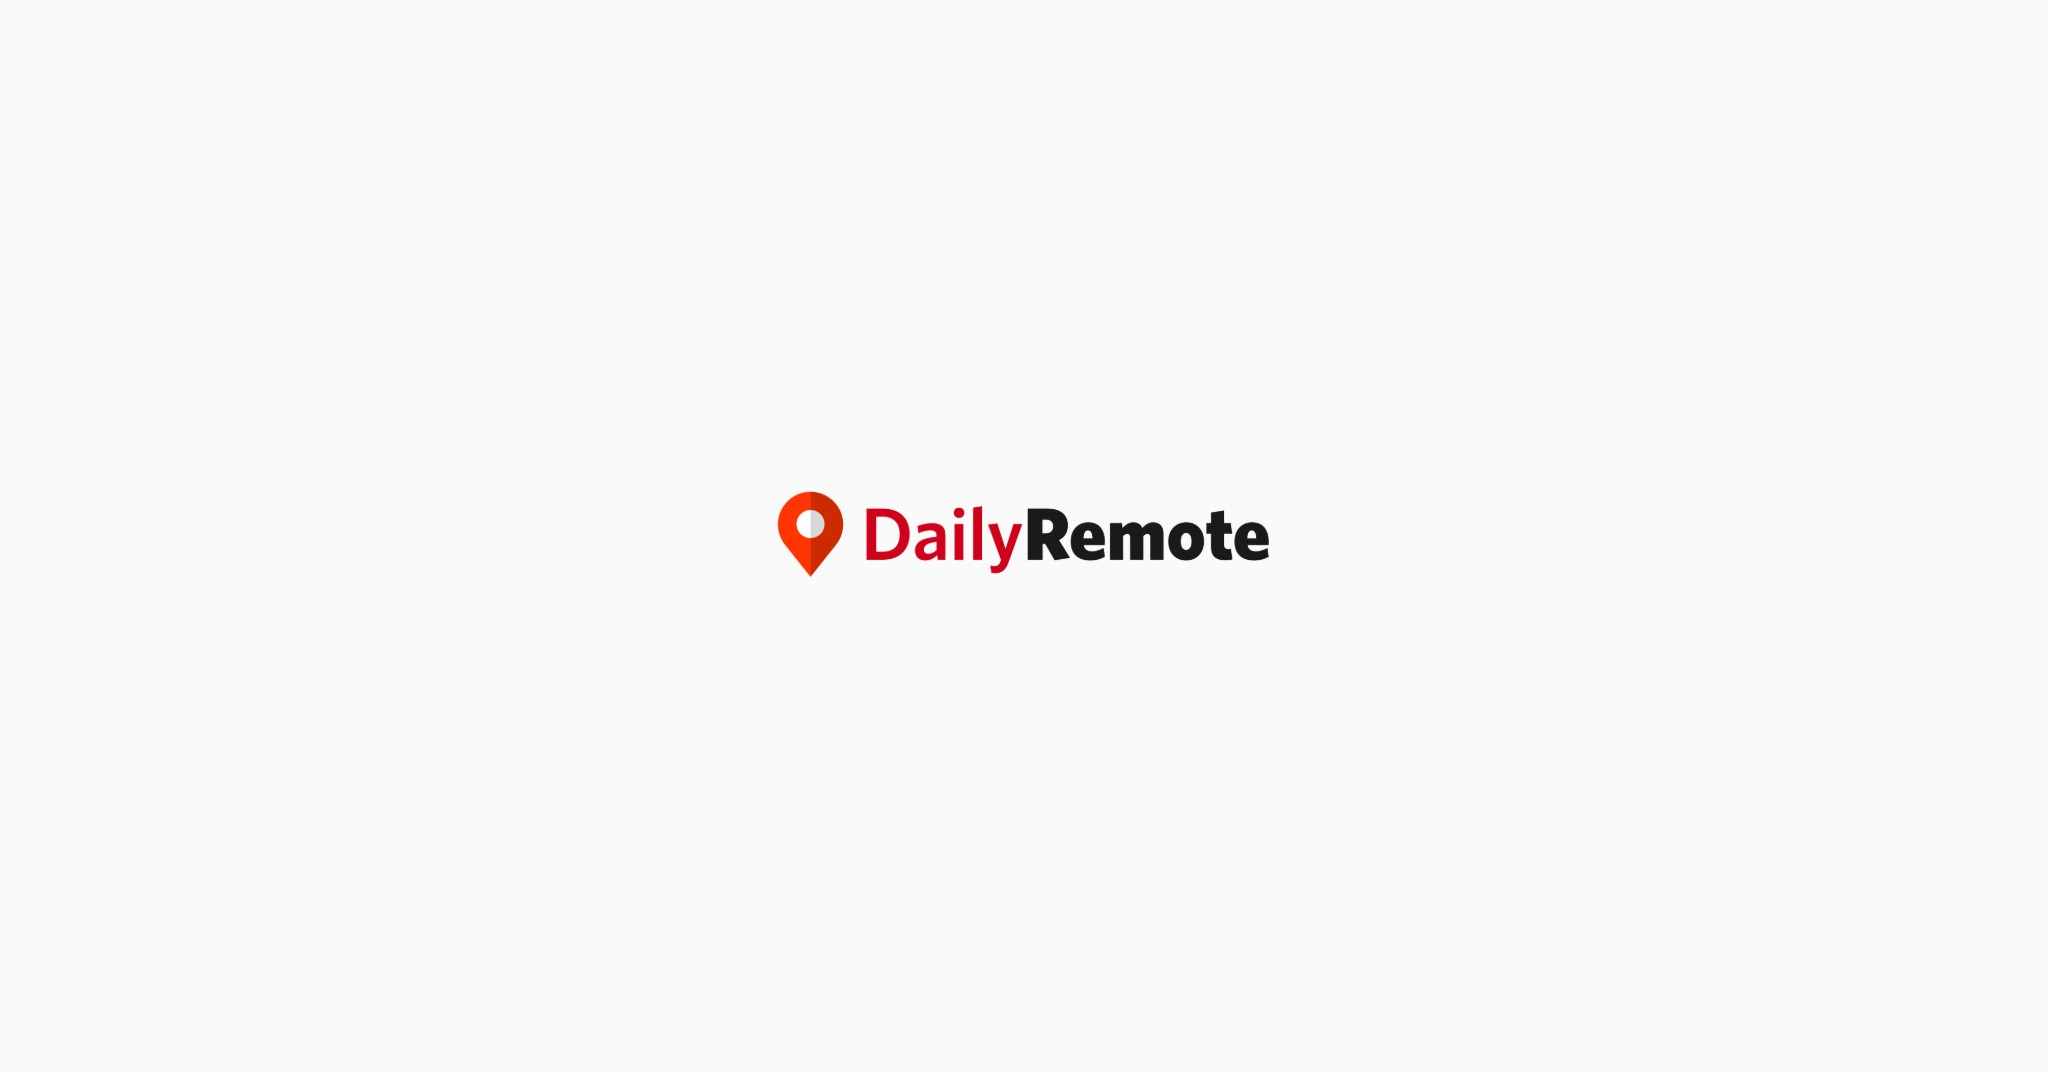 Daily Remote